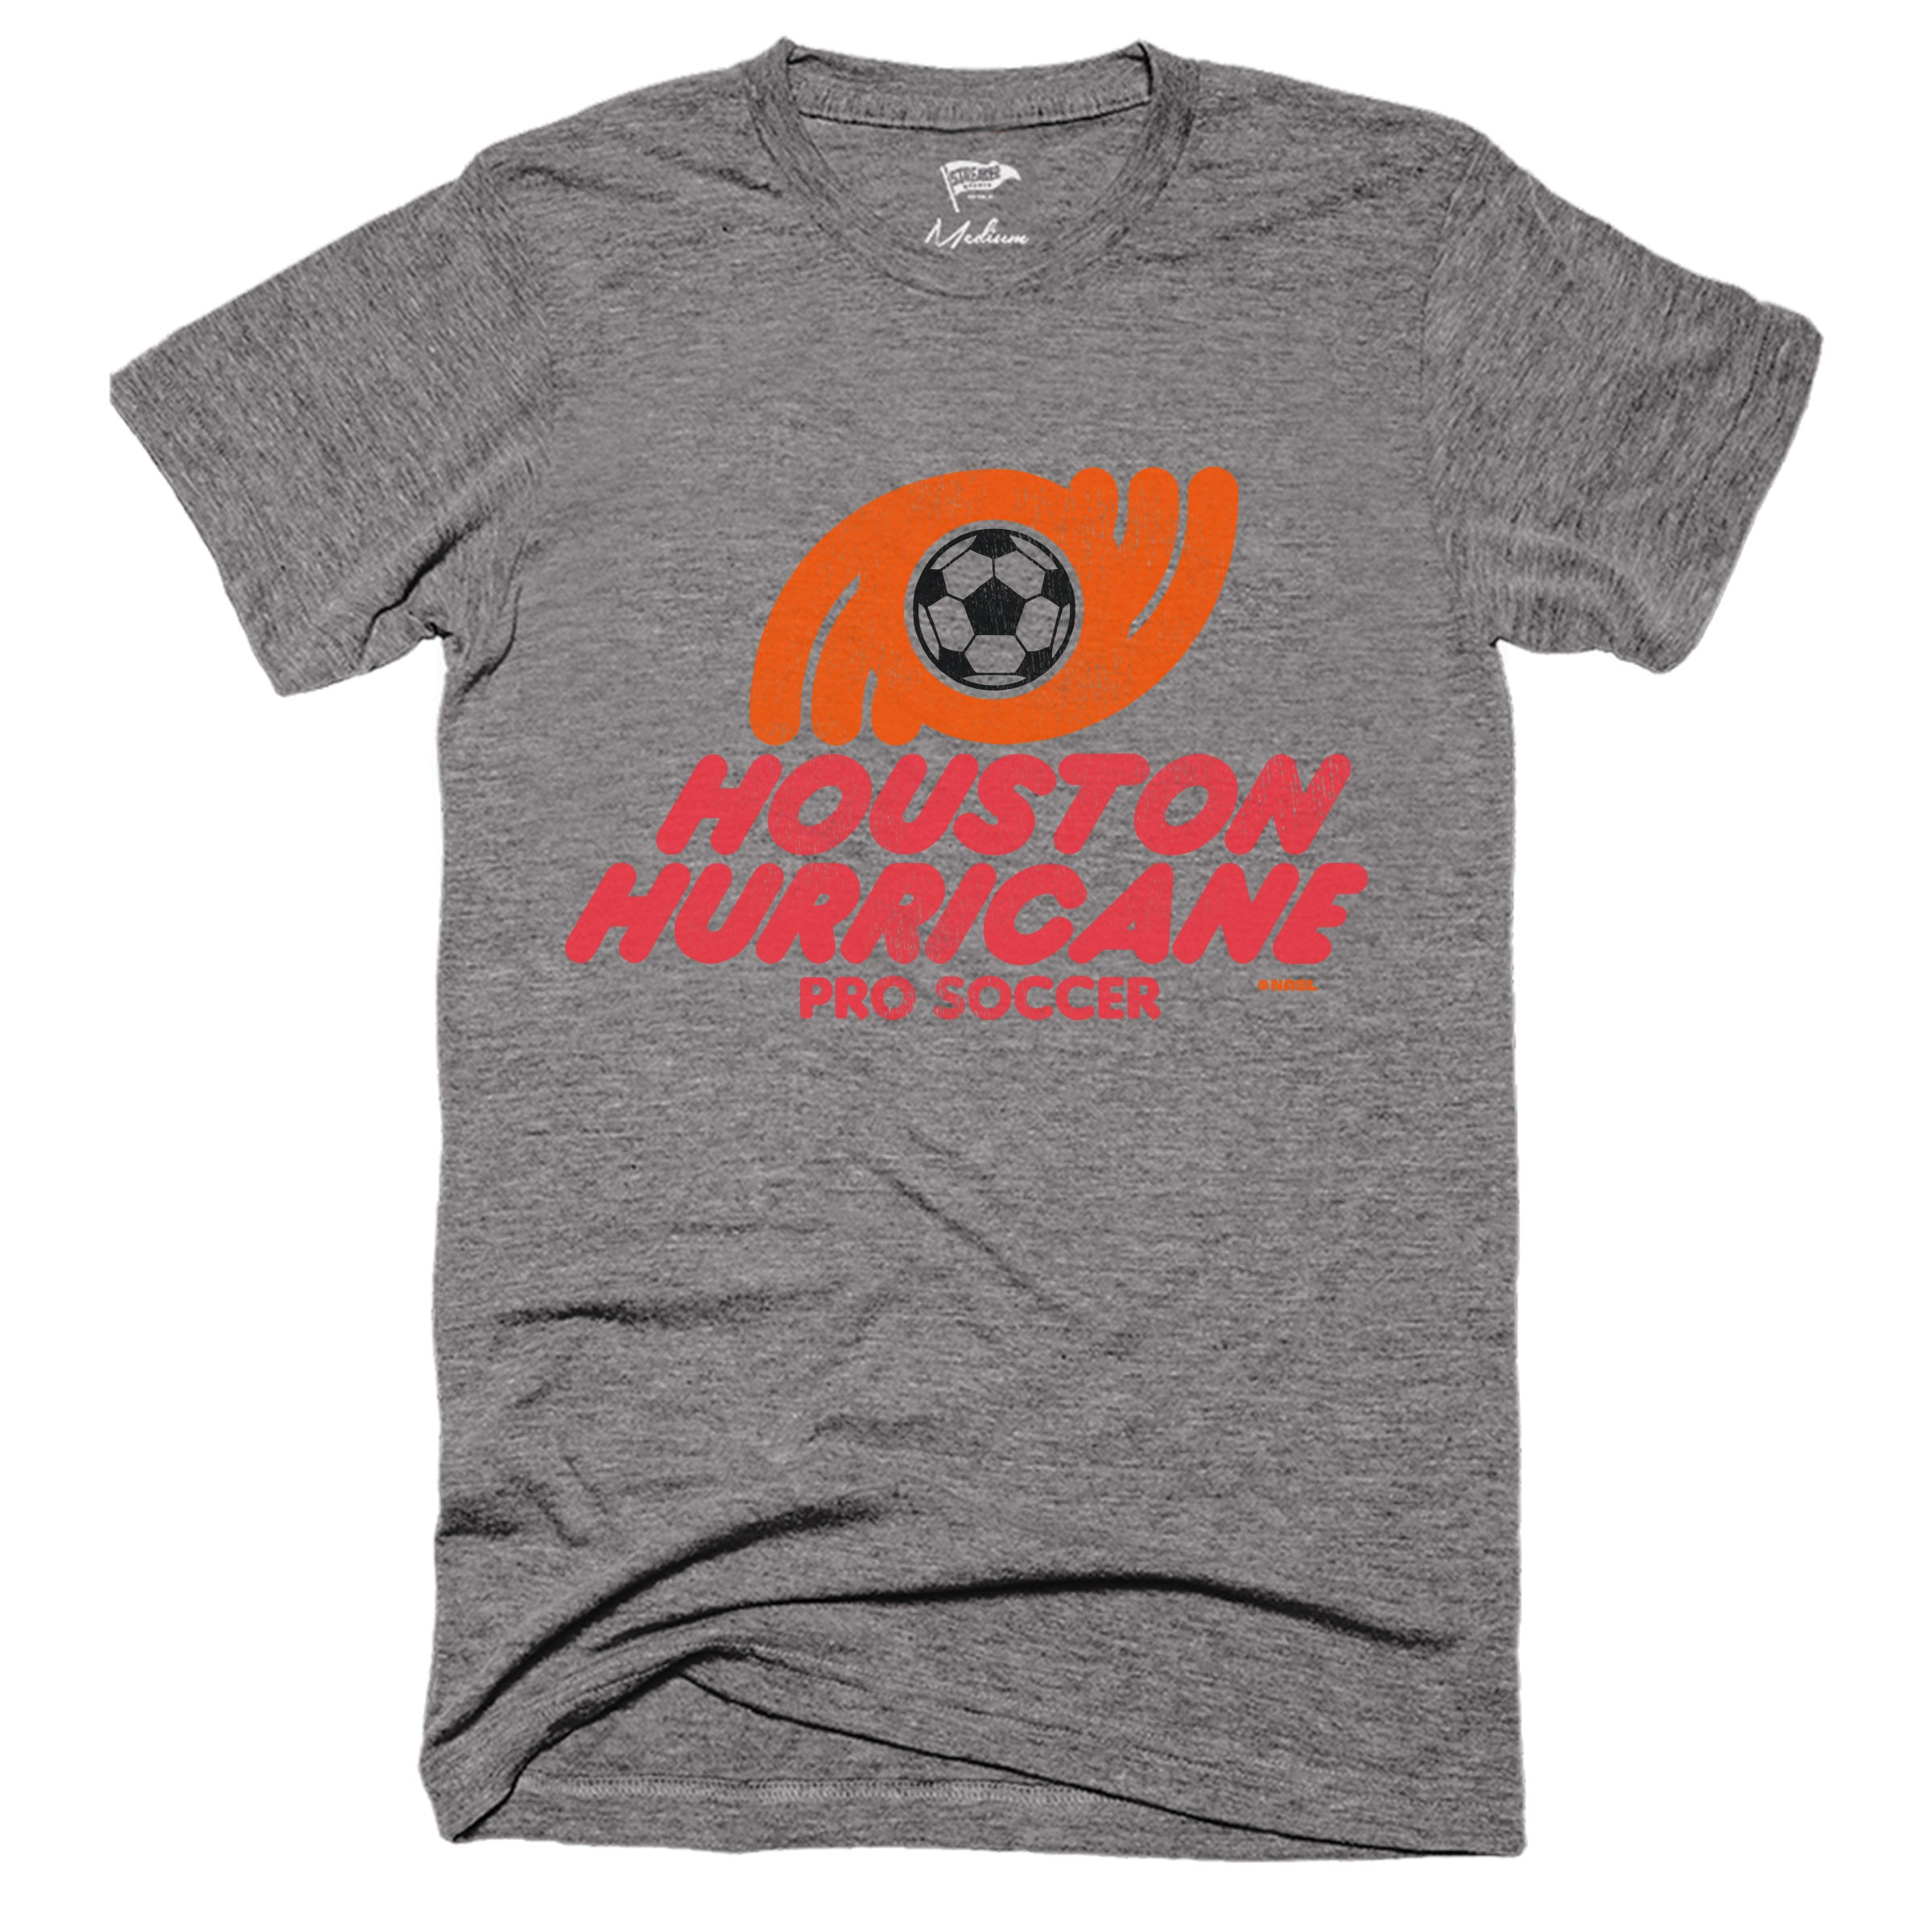 1978 Houston Hurricane Tee